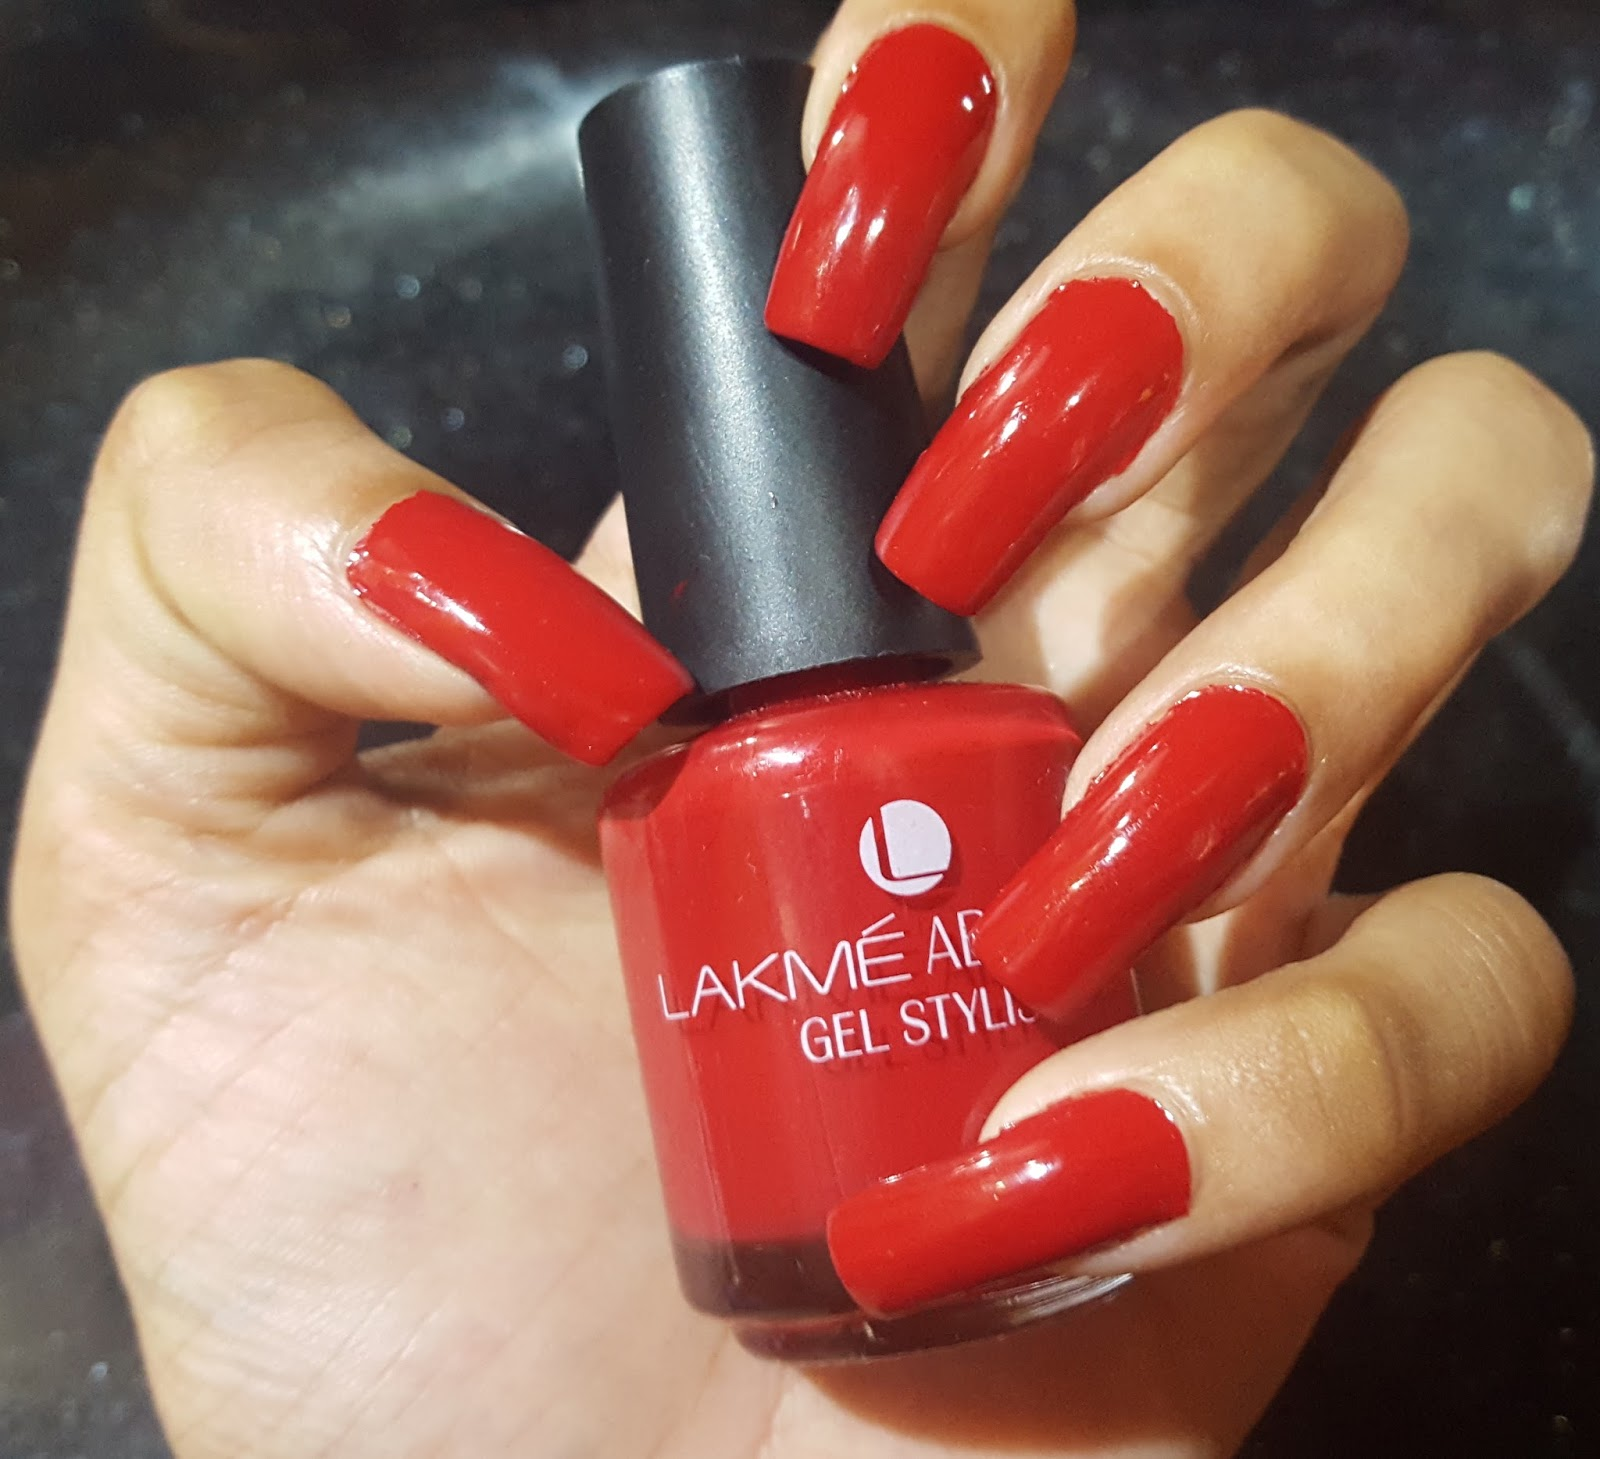 Ahoy! Nails!!: Lakme Absolute Gel Stylist Nail Polish - Scarlet Red ...